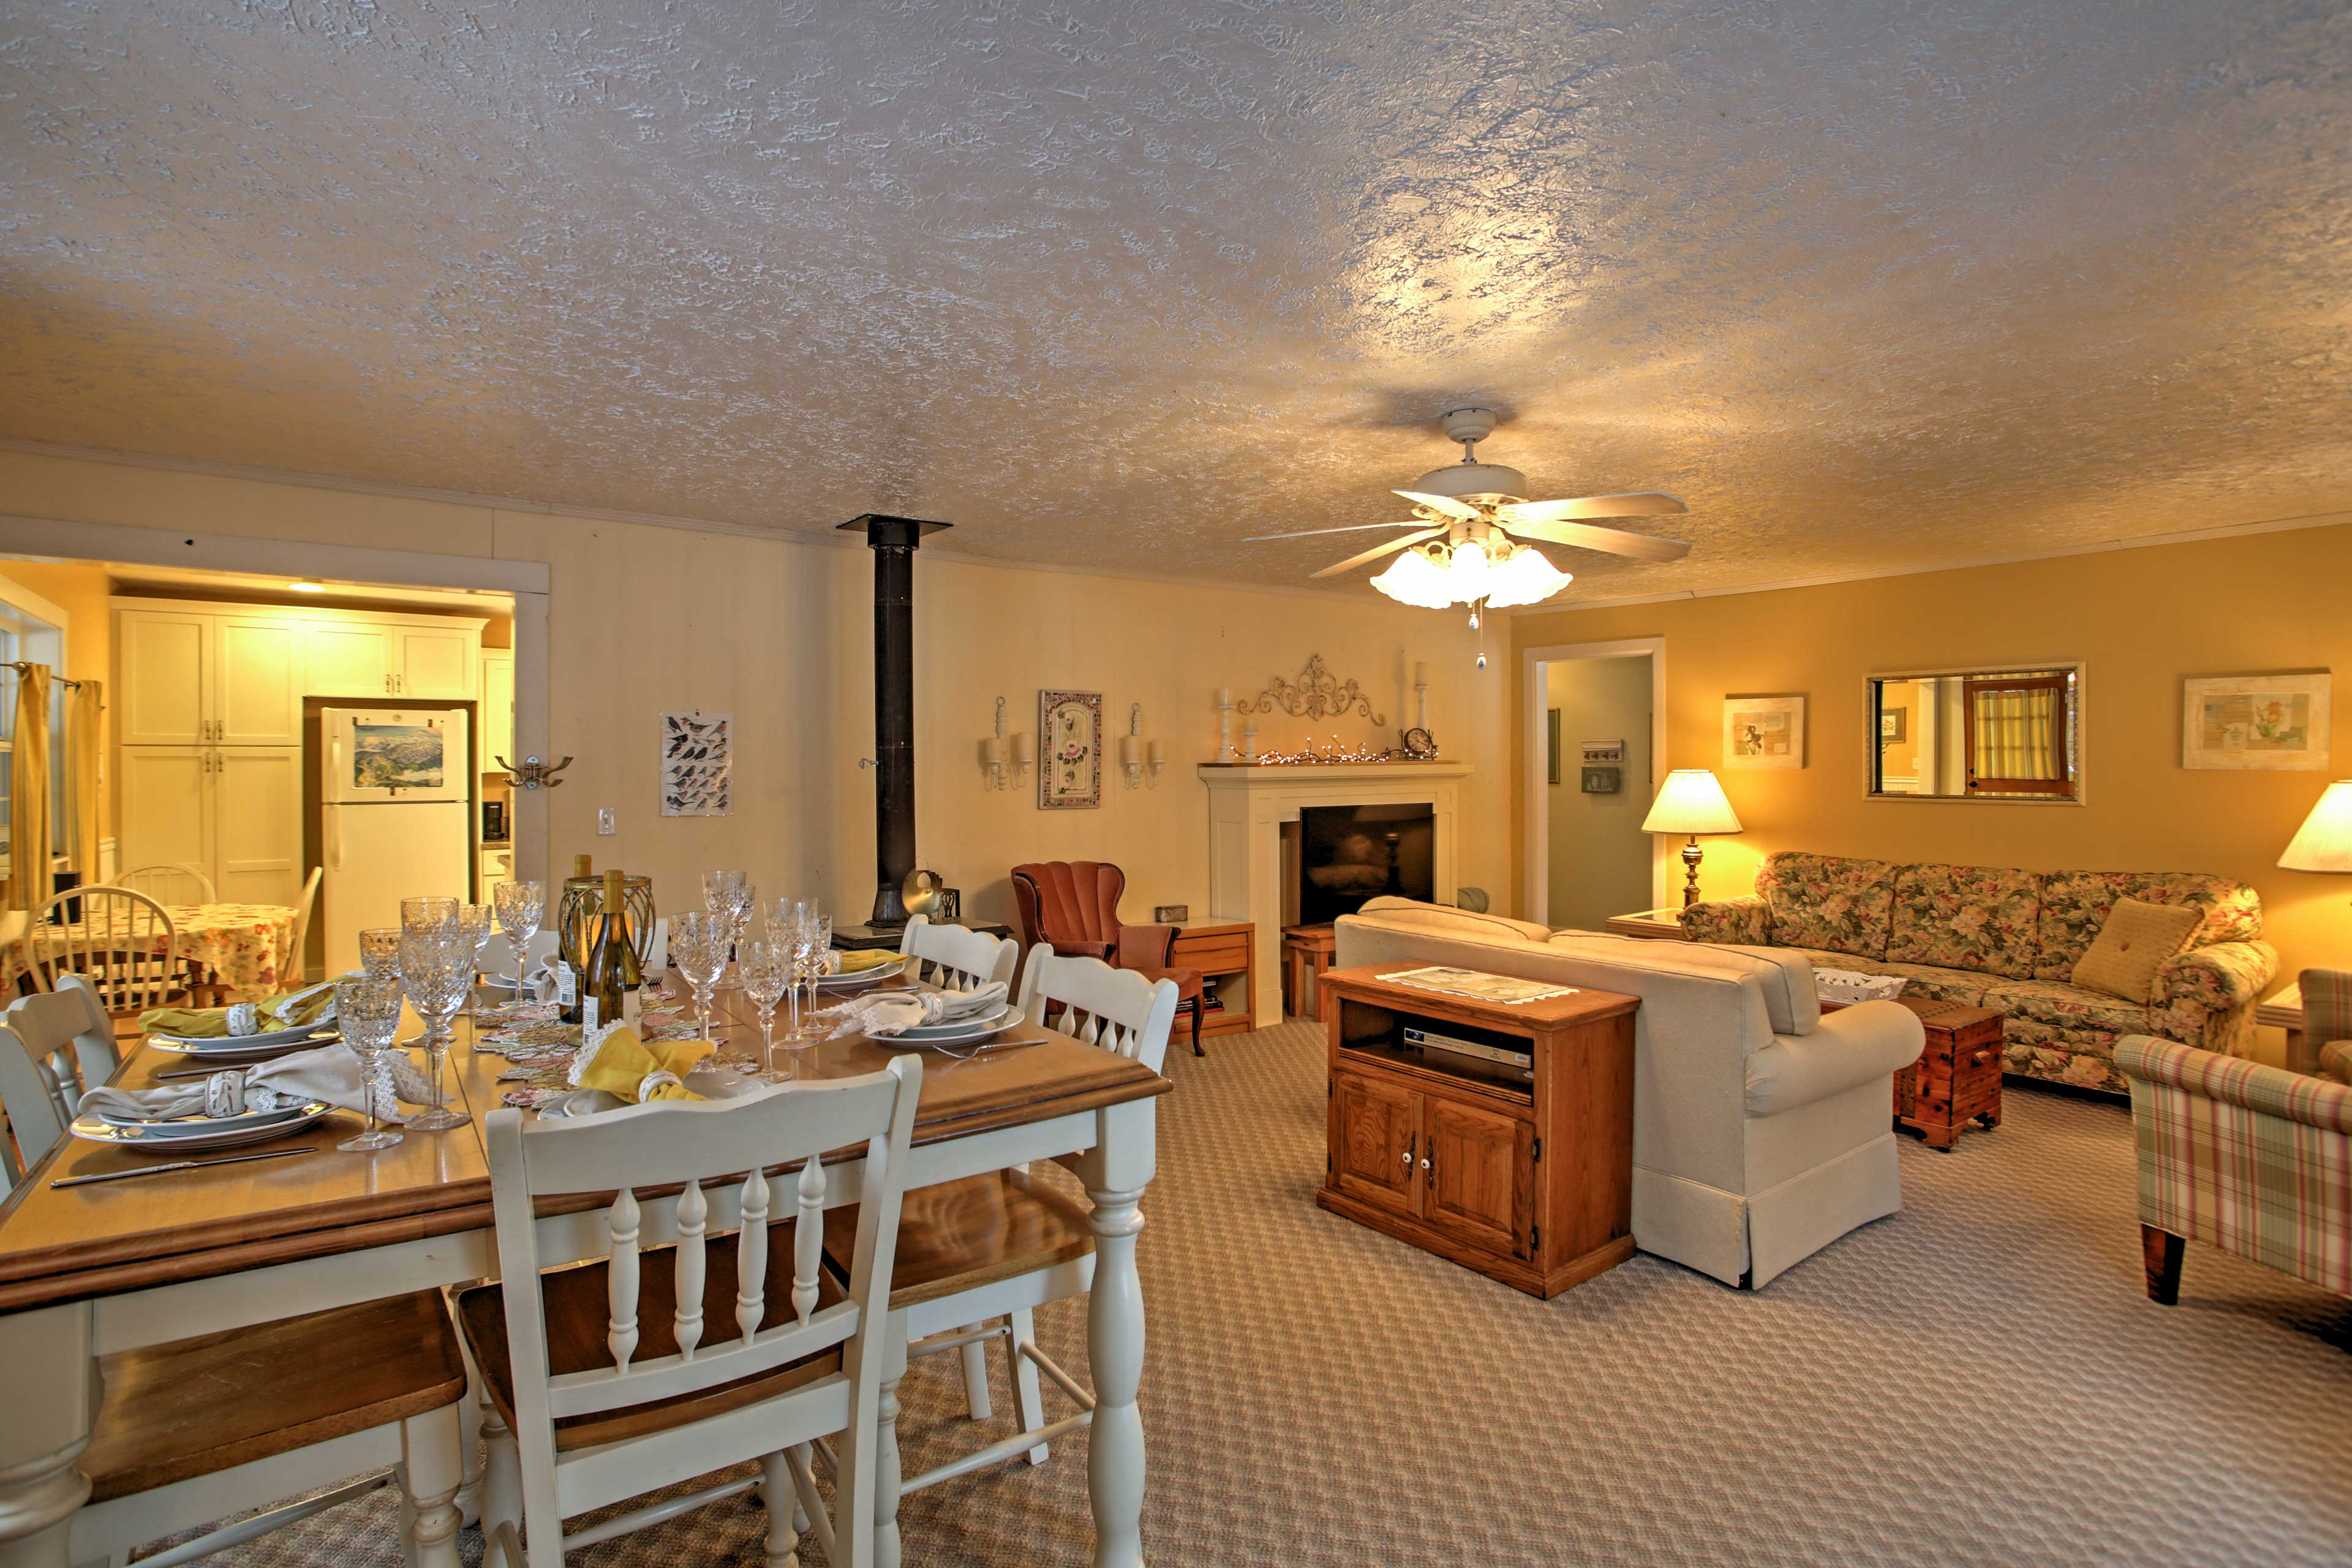 The spacious layout makes this area warm and inviting.